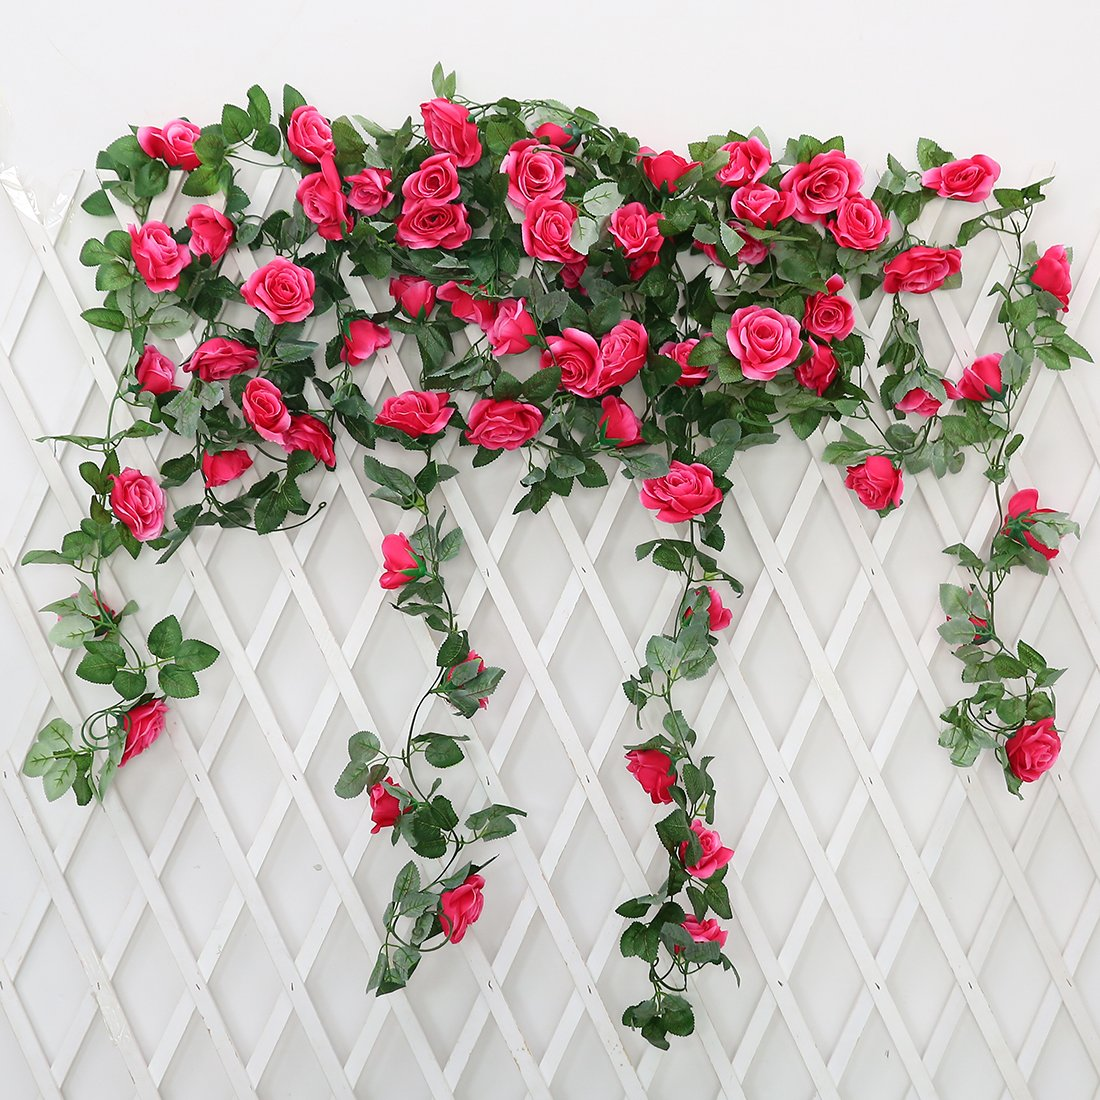 2 Pack 72ft Artificial Fake Rose Garland Vines Hanging Silk Flowers